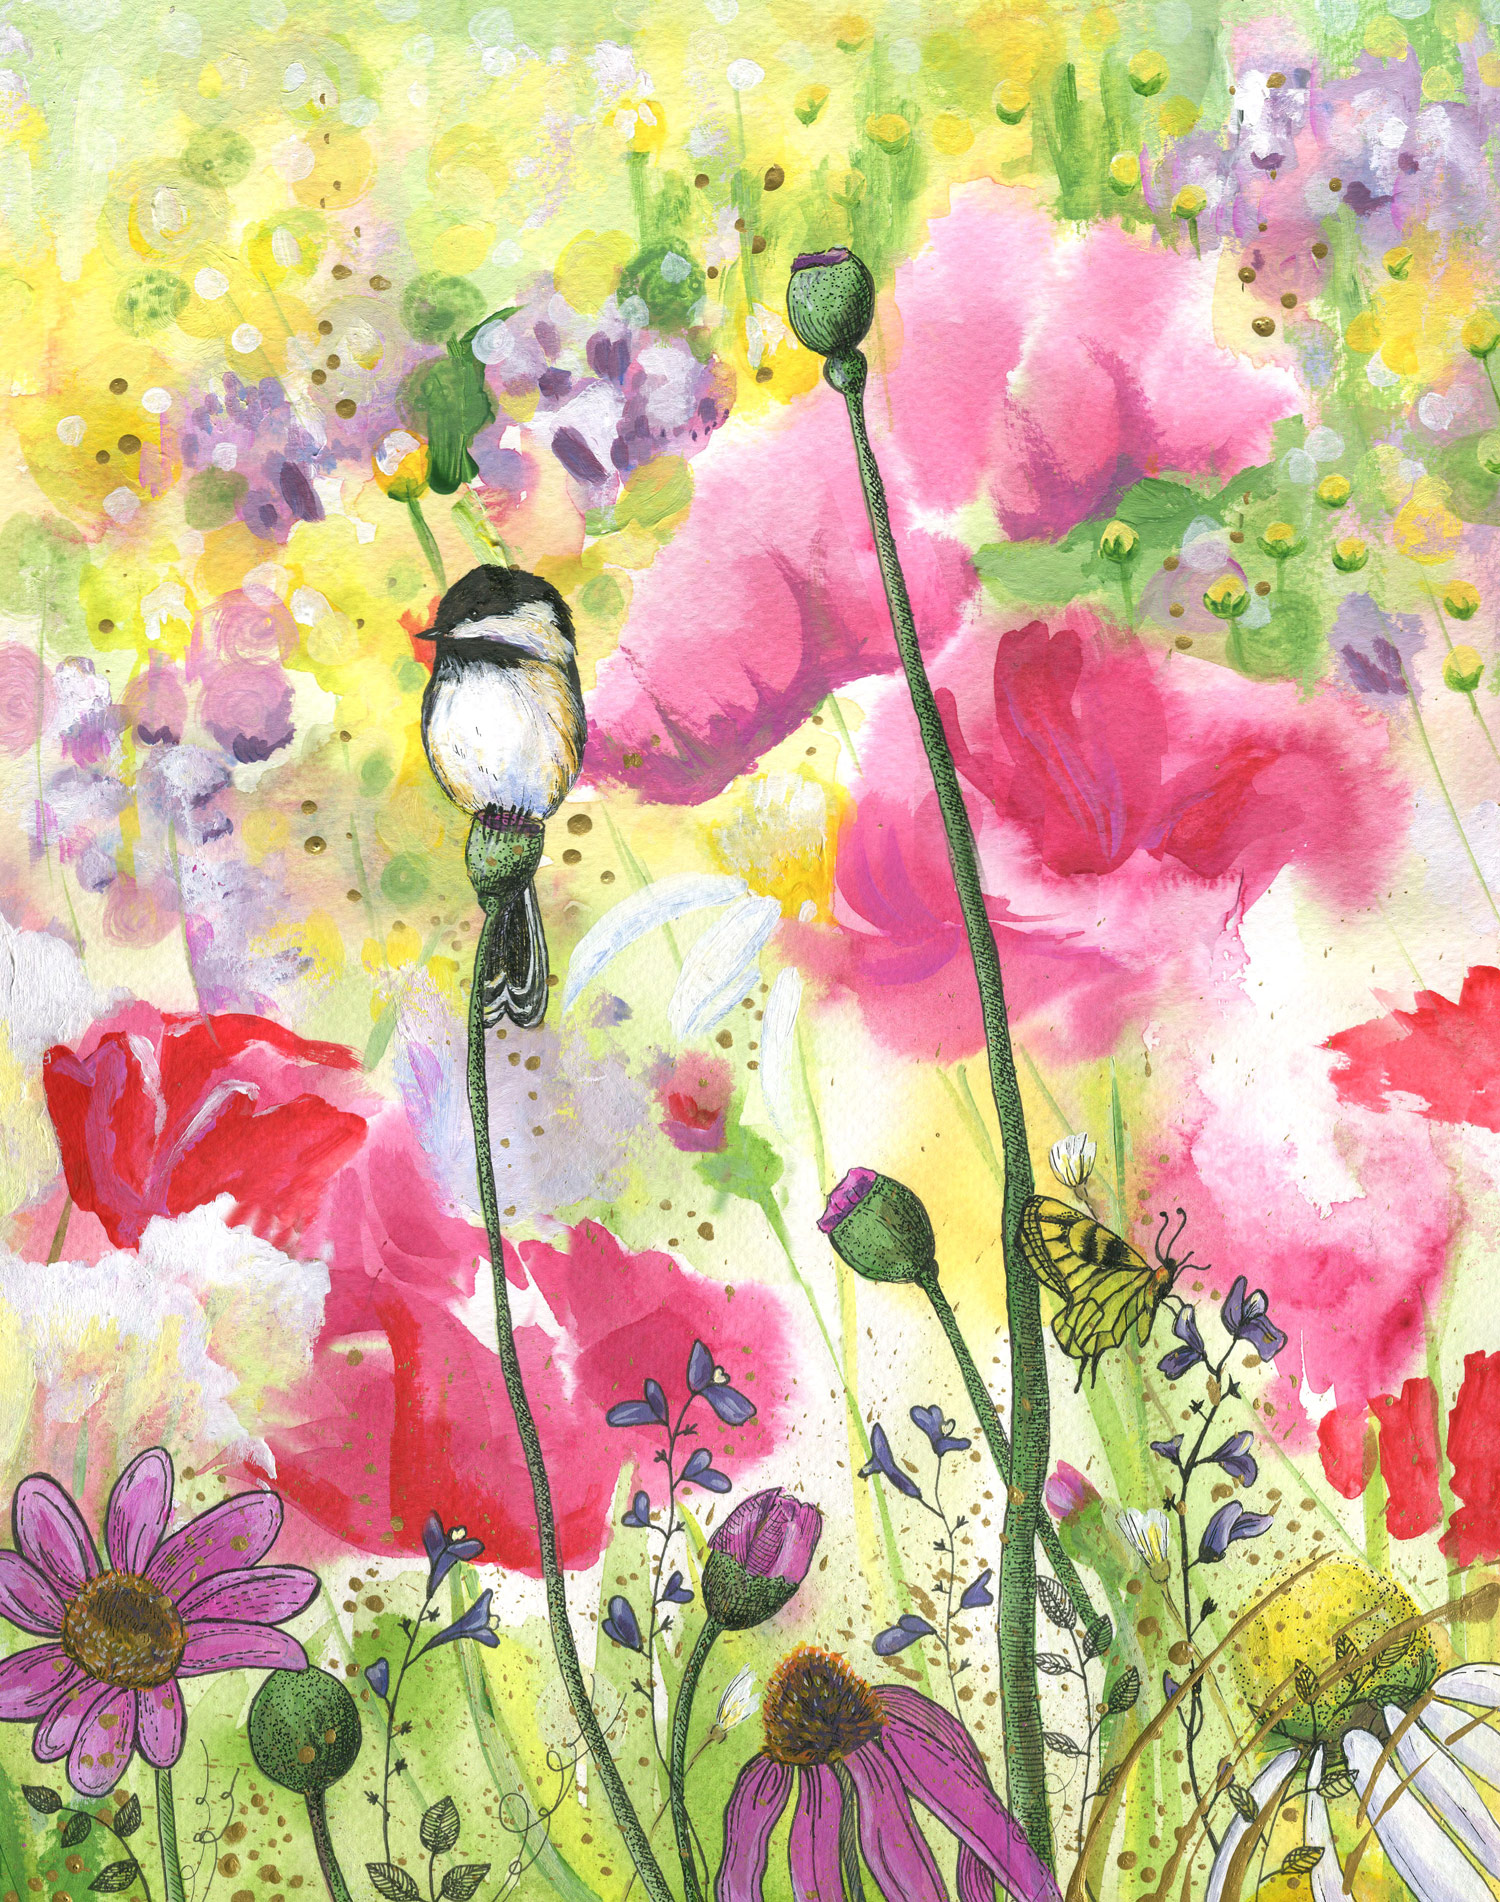 ORIGINAL WATERCOLOR, ACRYLIC AND PEN PAINTING11X14 Inches, Chickadee Wildflowers : $370   Purchase